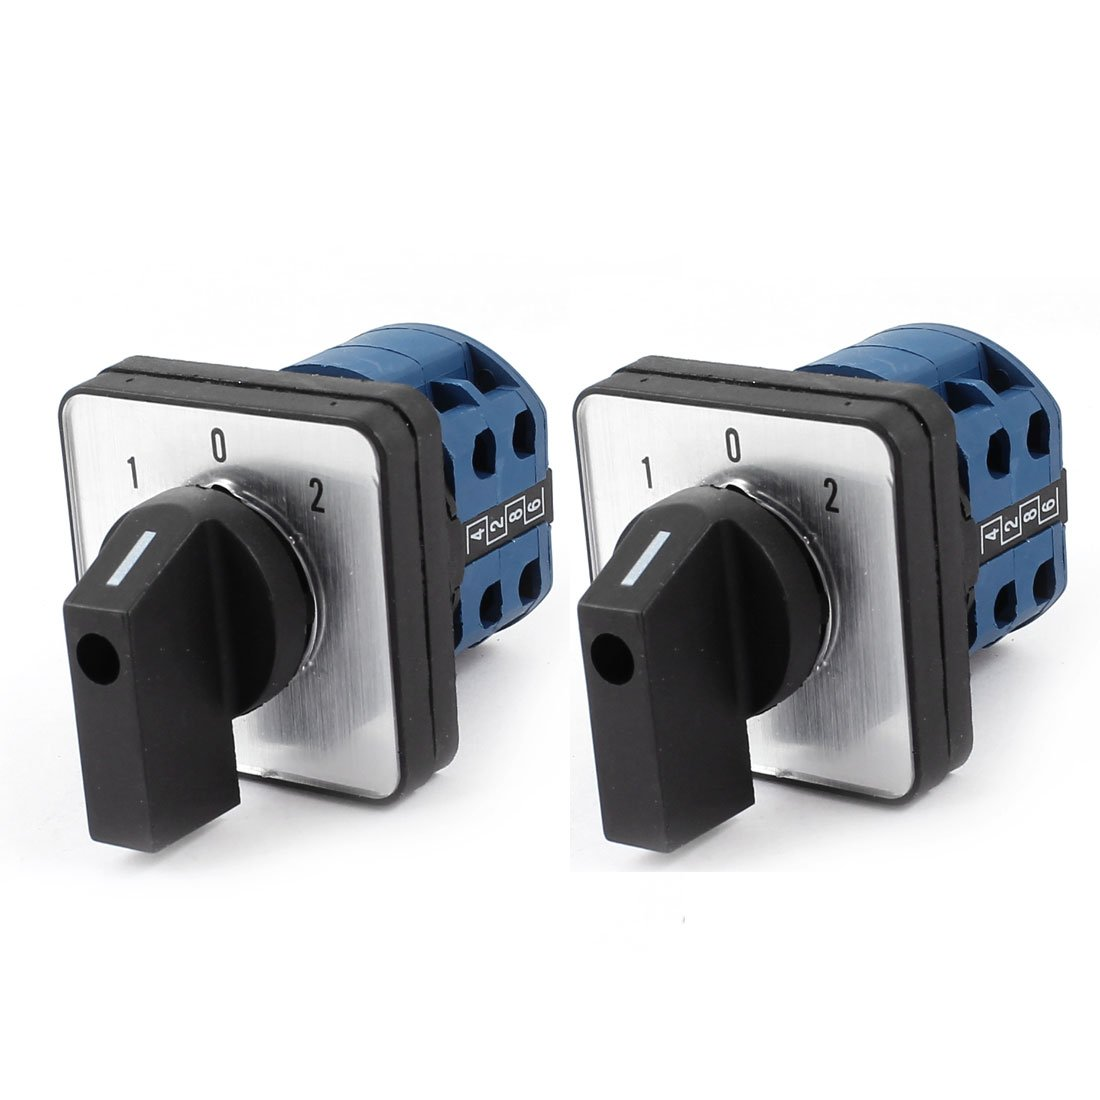 AC 660V 20A 3-Position Latching Rotary Changeover Switch 2 Pcs by uxcell (Image #1)